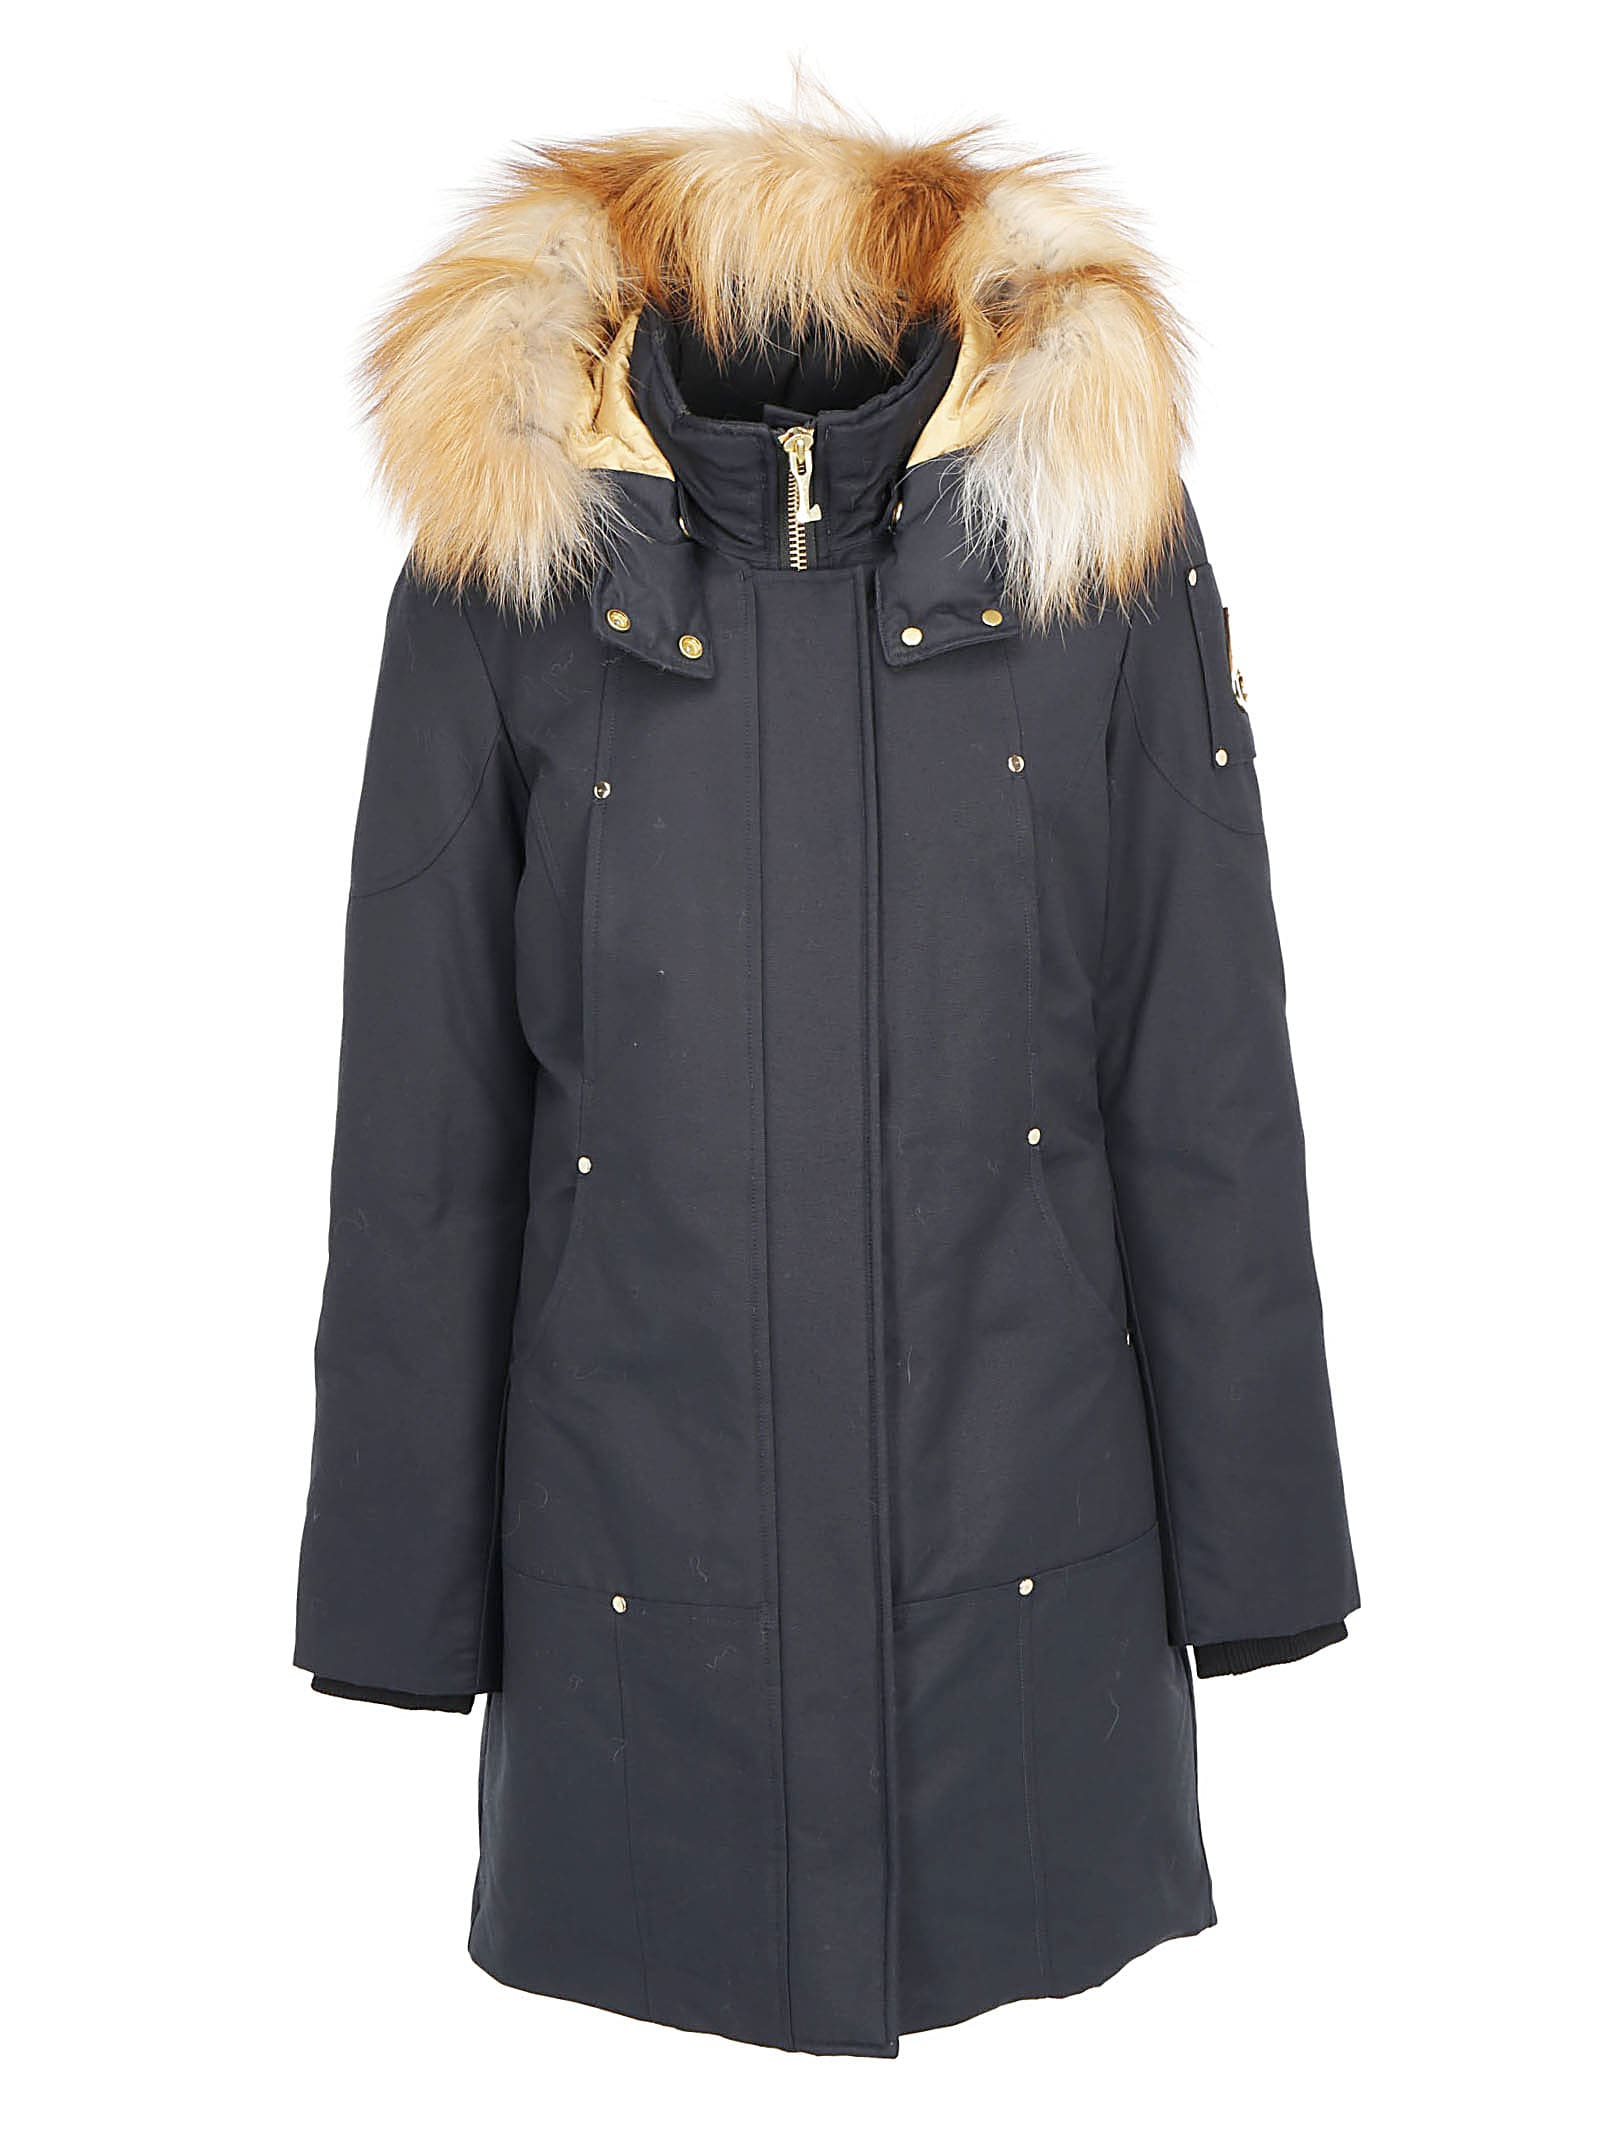 Moose Knuckles Grand Metis Parka Coat